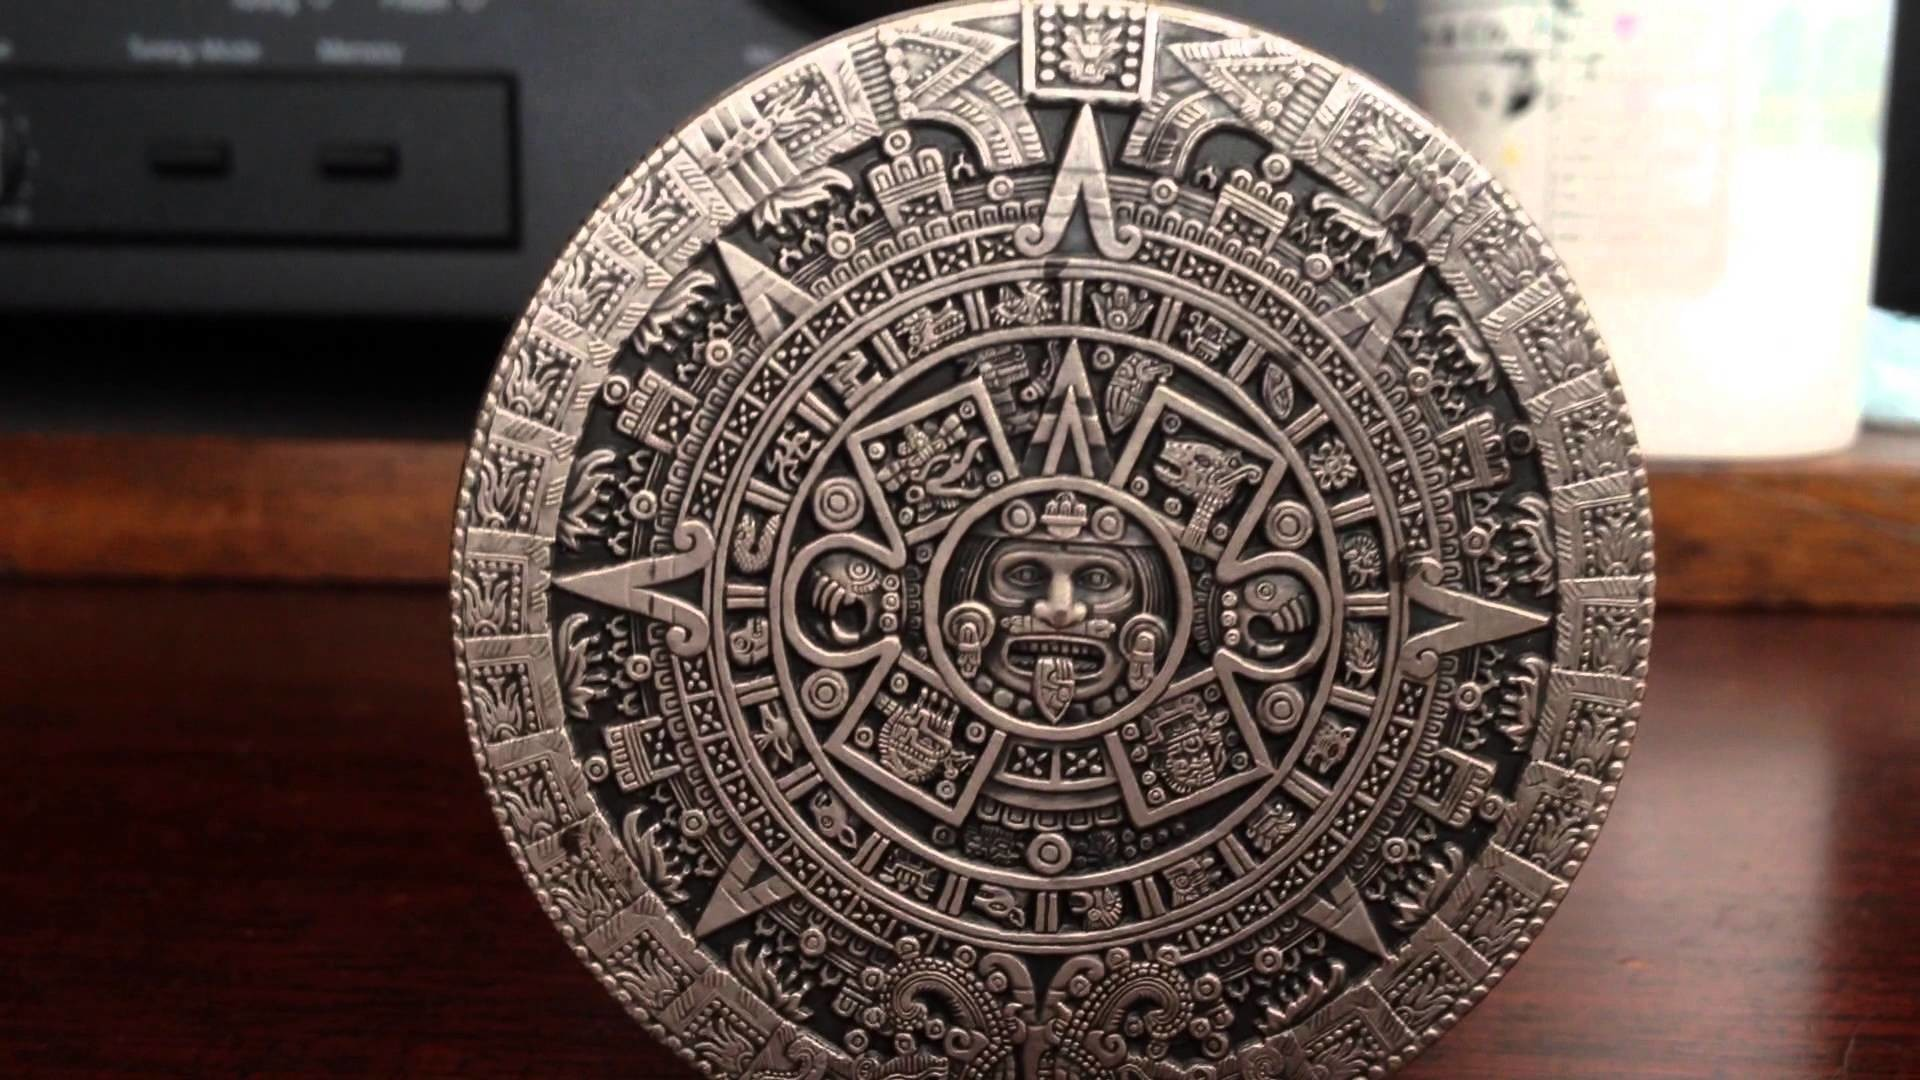 1920x1080 wallpaper.wiki-Download-Free-Aztec-Calendar-Wallpaper-PIC-